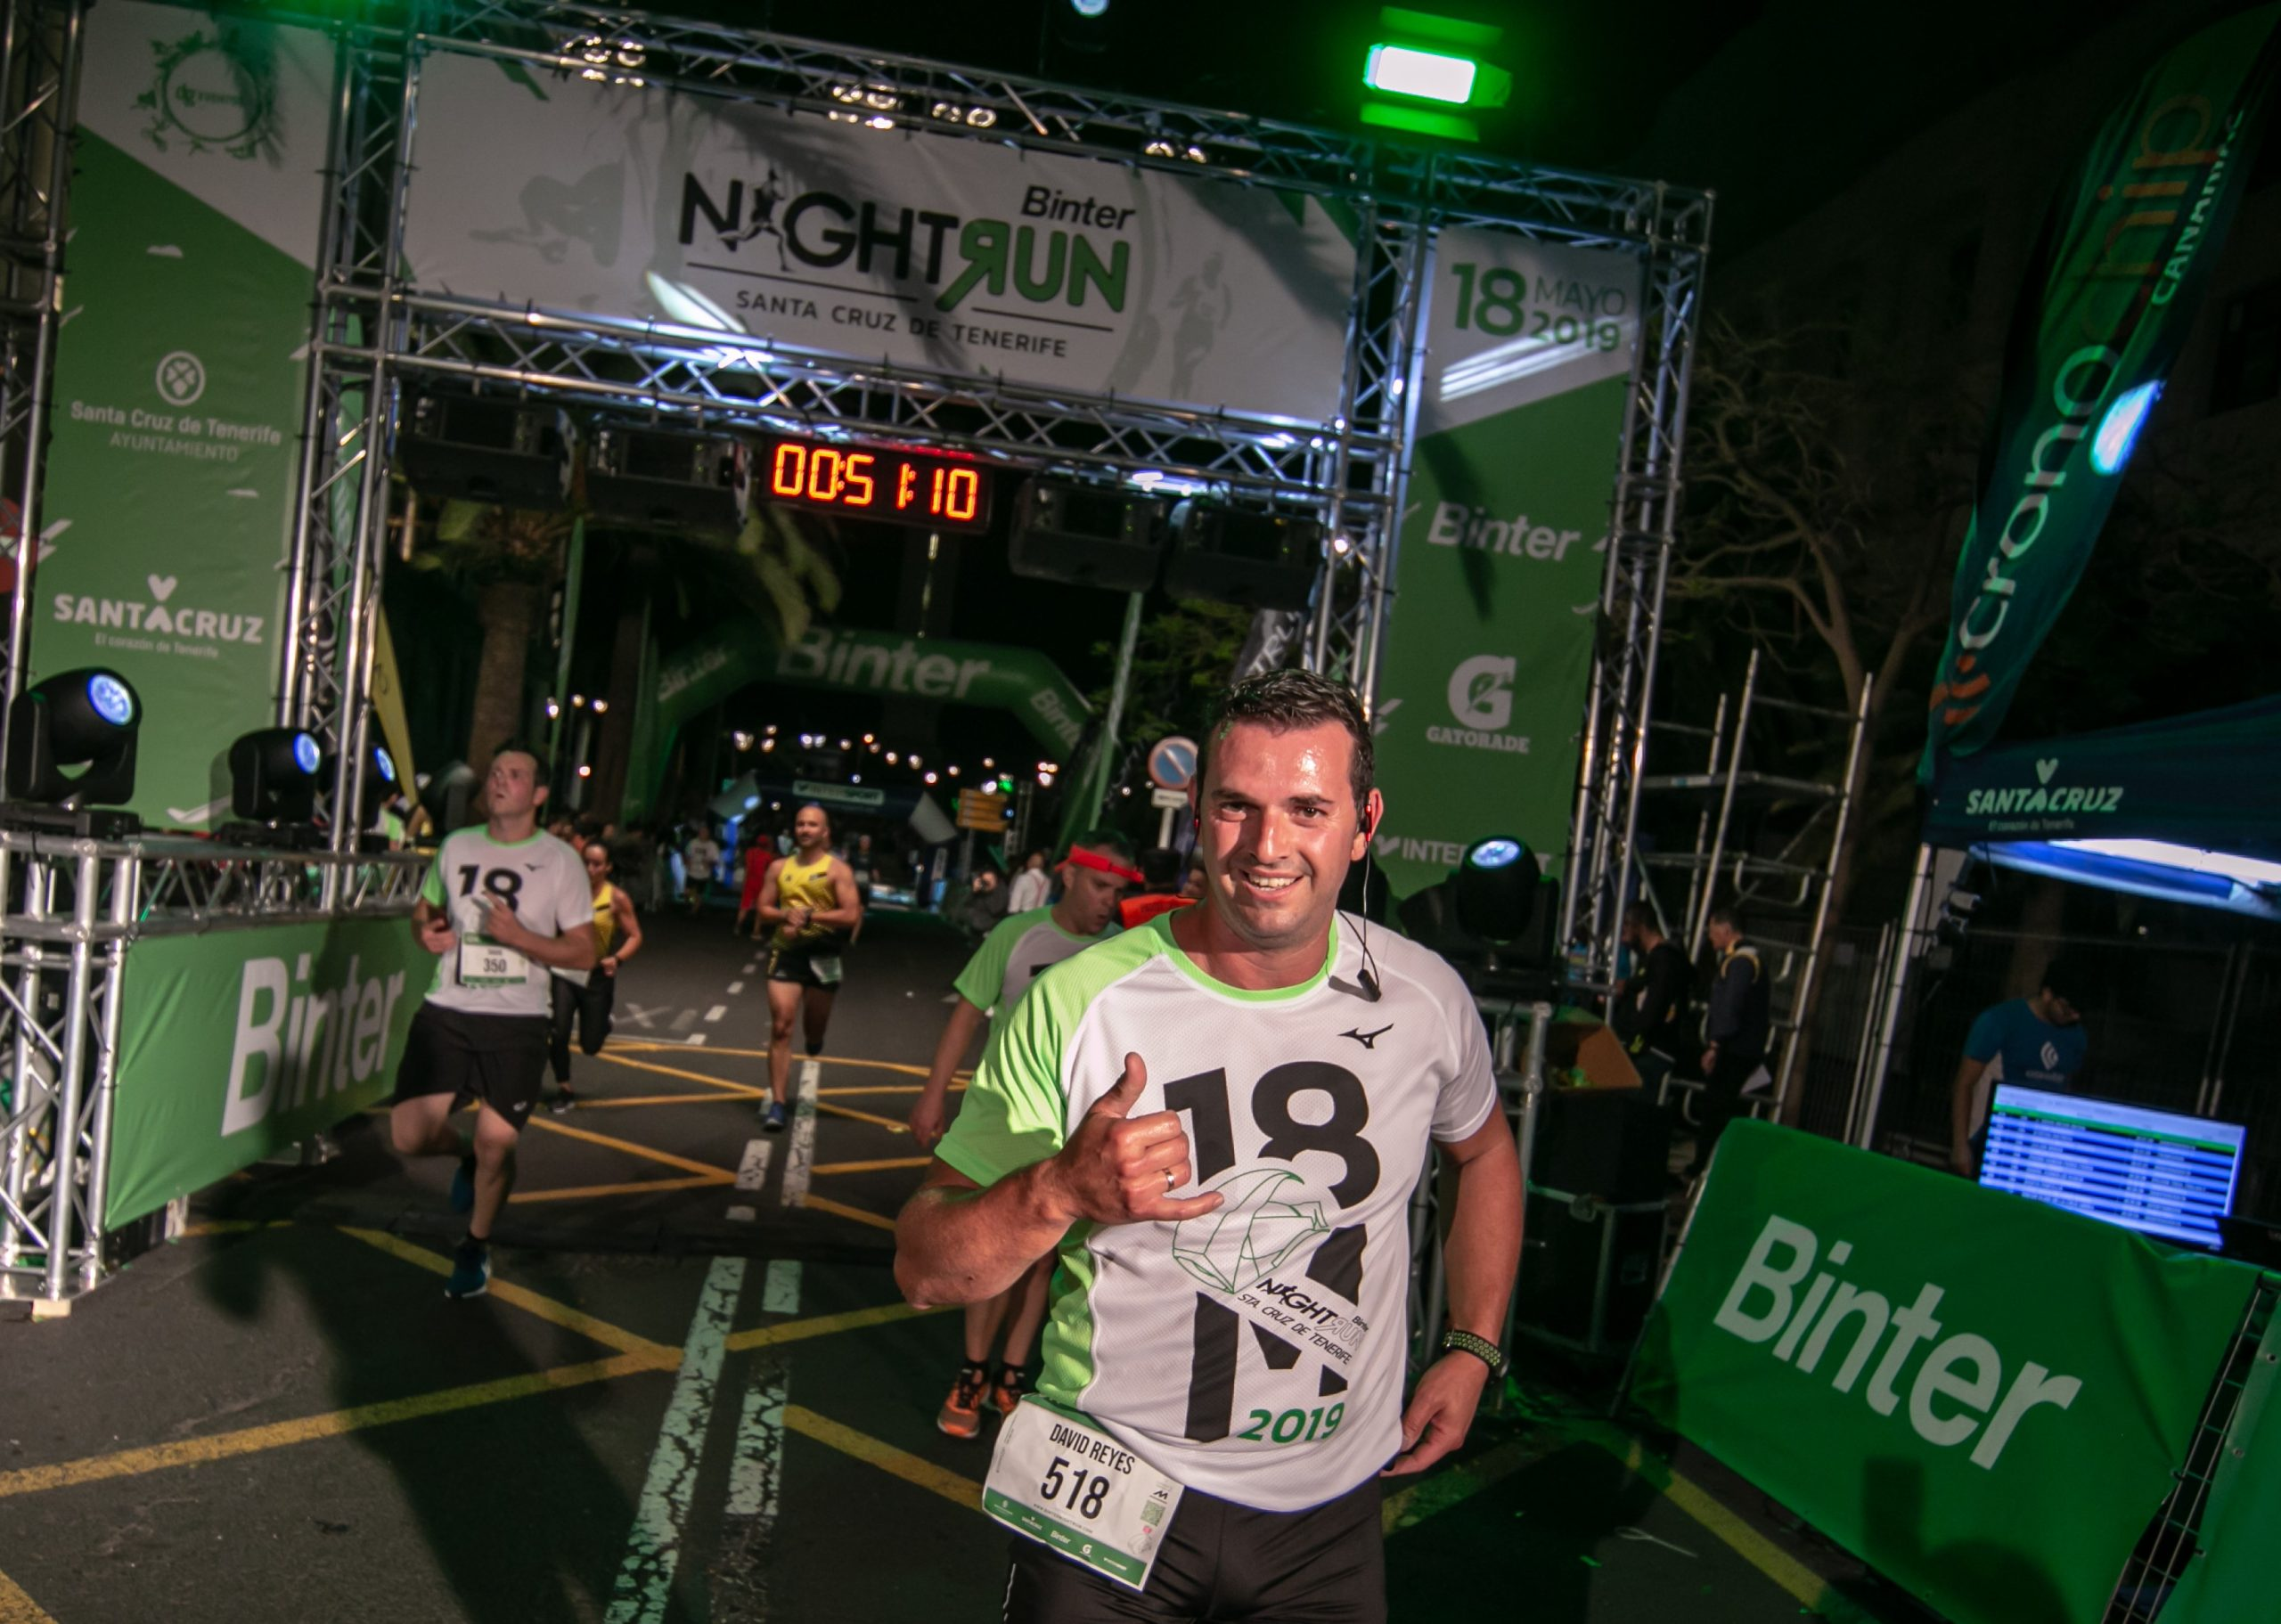 La Binter NightRun ya supera los 650 inscritos